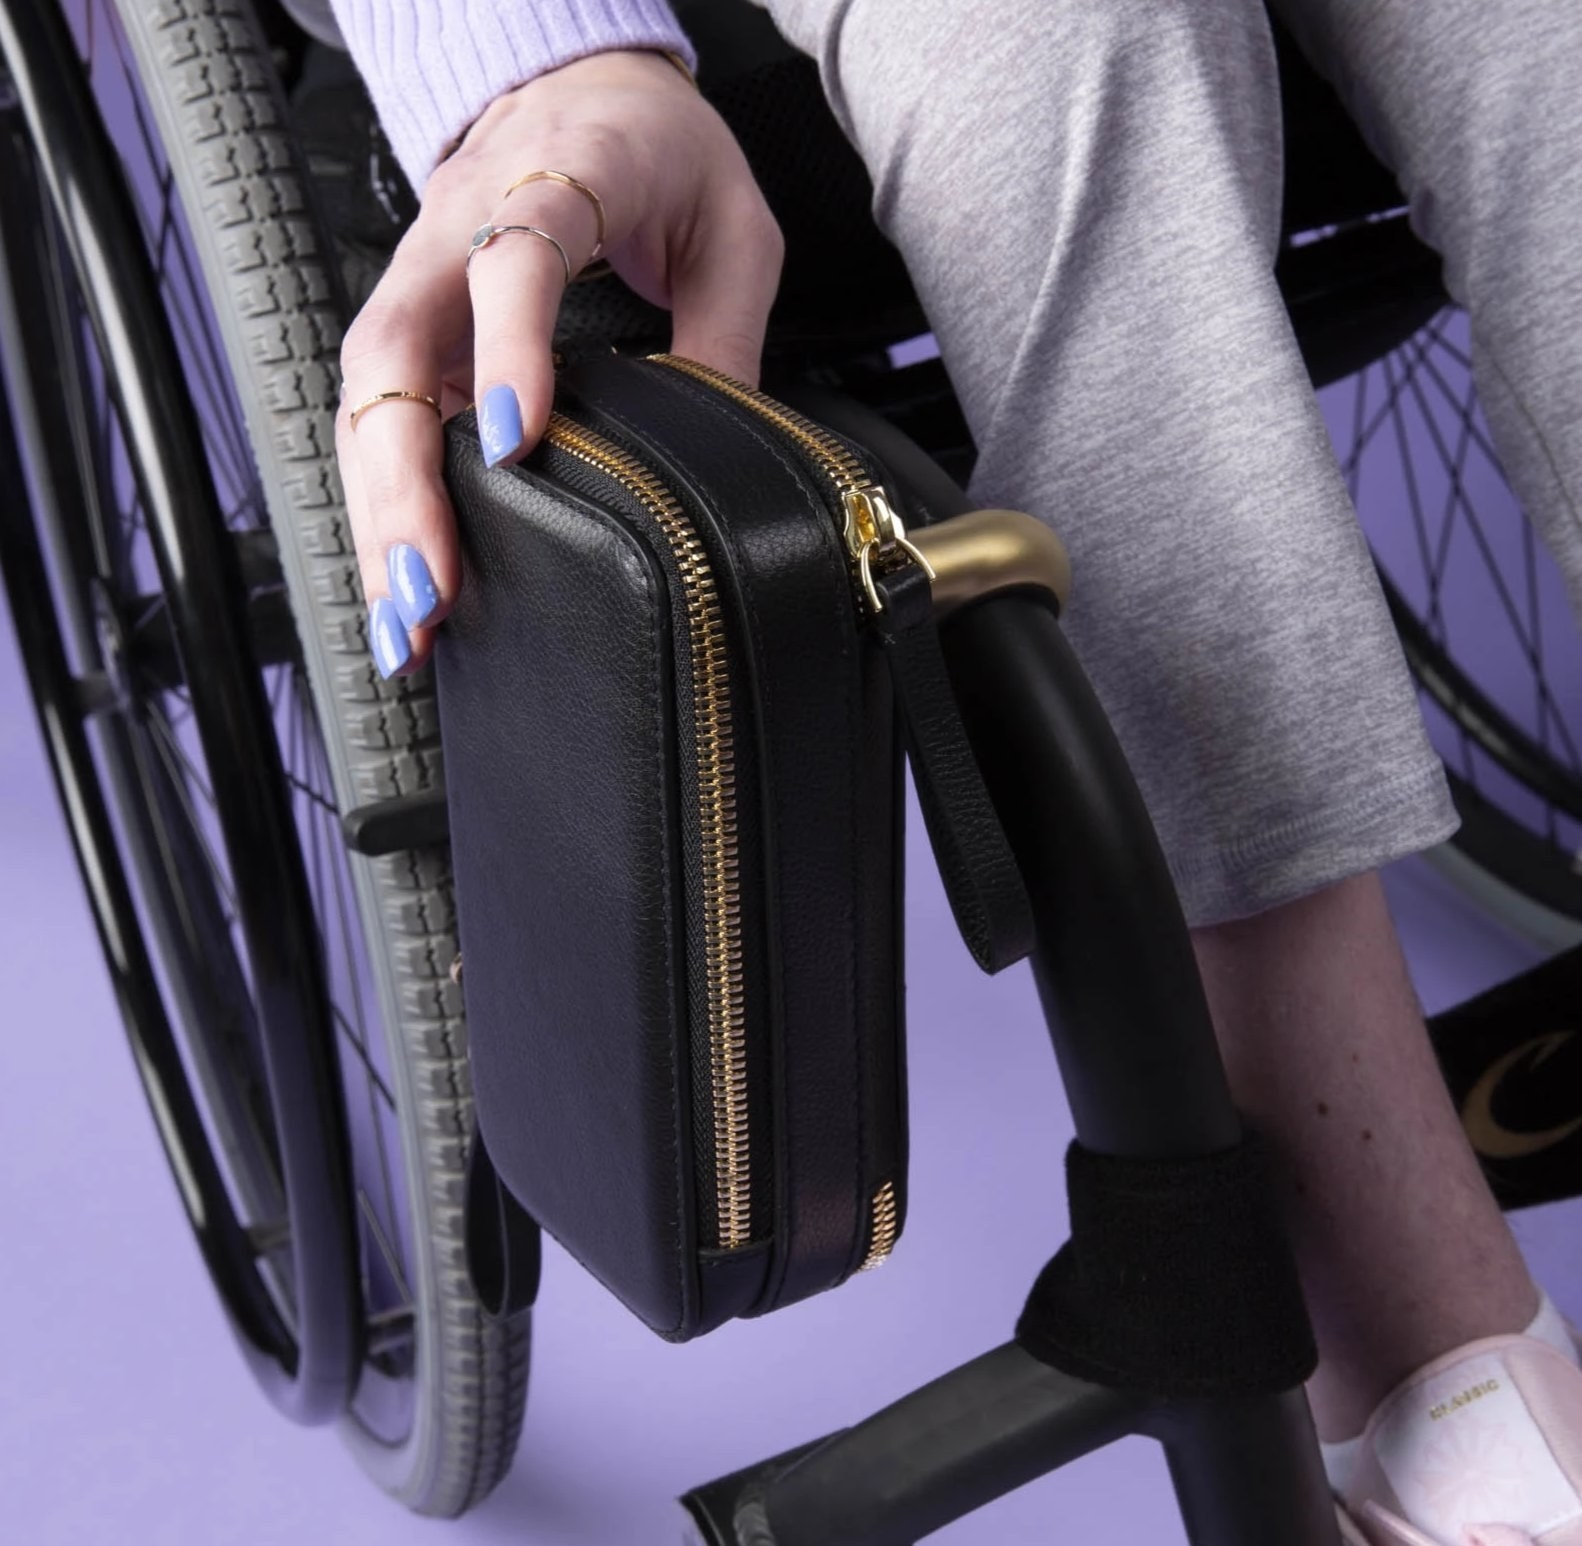 A sleek black pouch attached to a wheelchair